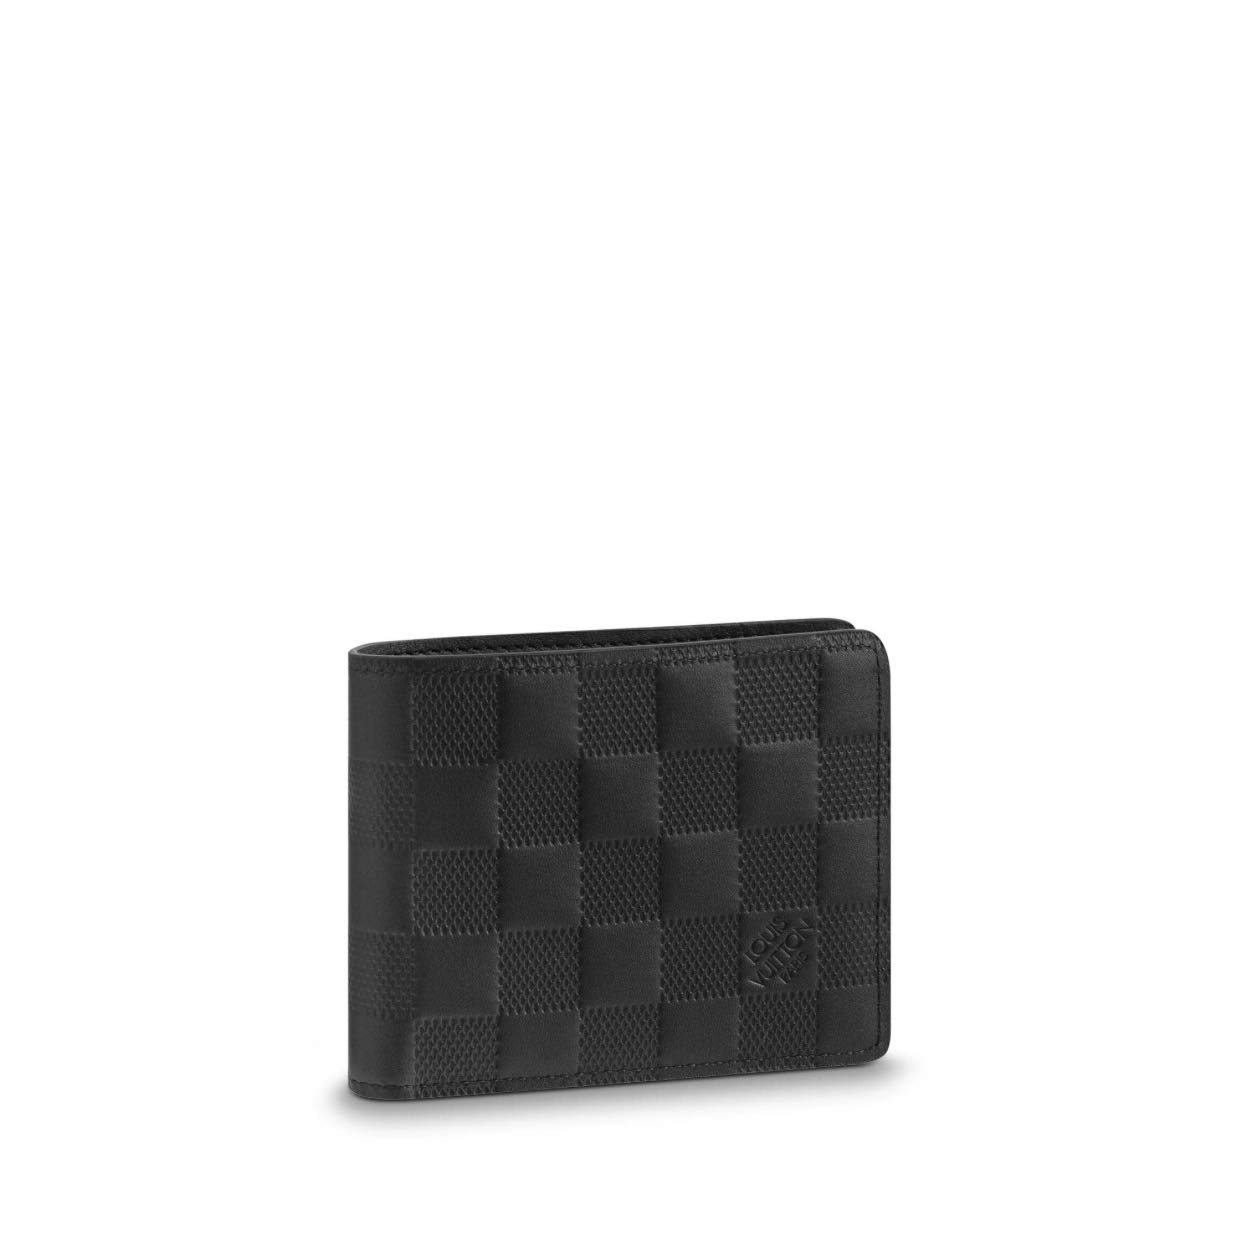 3e21cfd54bf1 Louis Vuitton Damier Infini Leather Onyx Slender Wallet N63263  Amazon.ca   Clothing